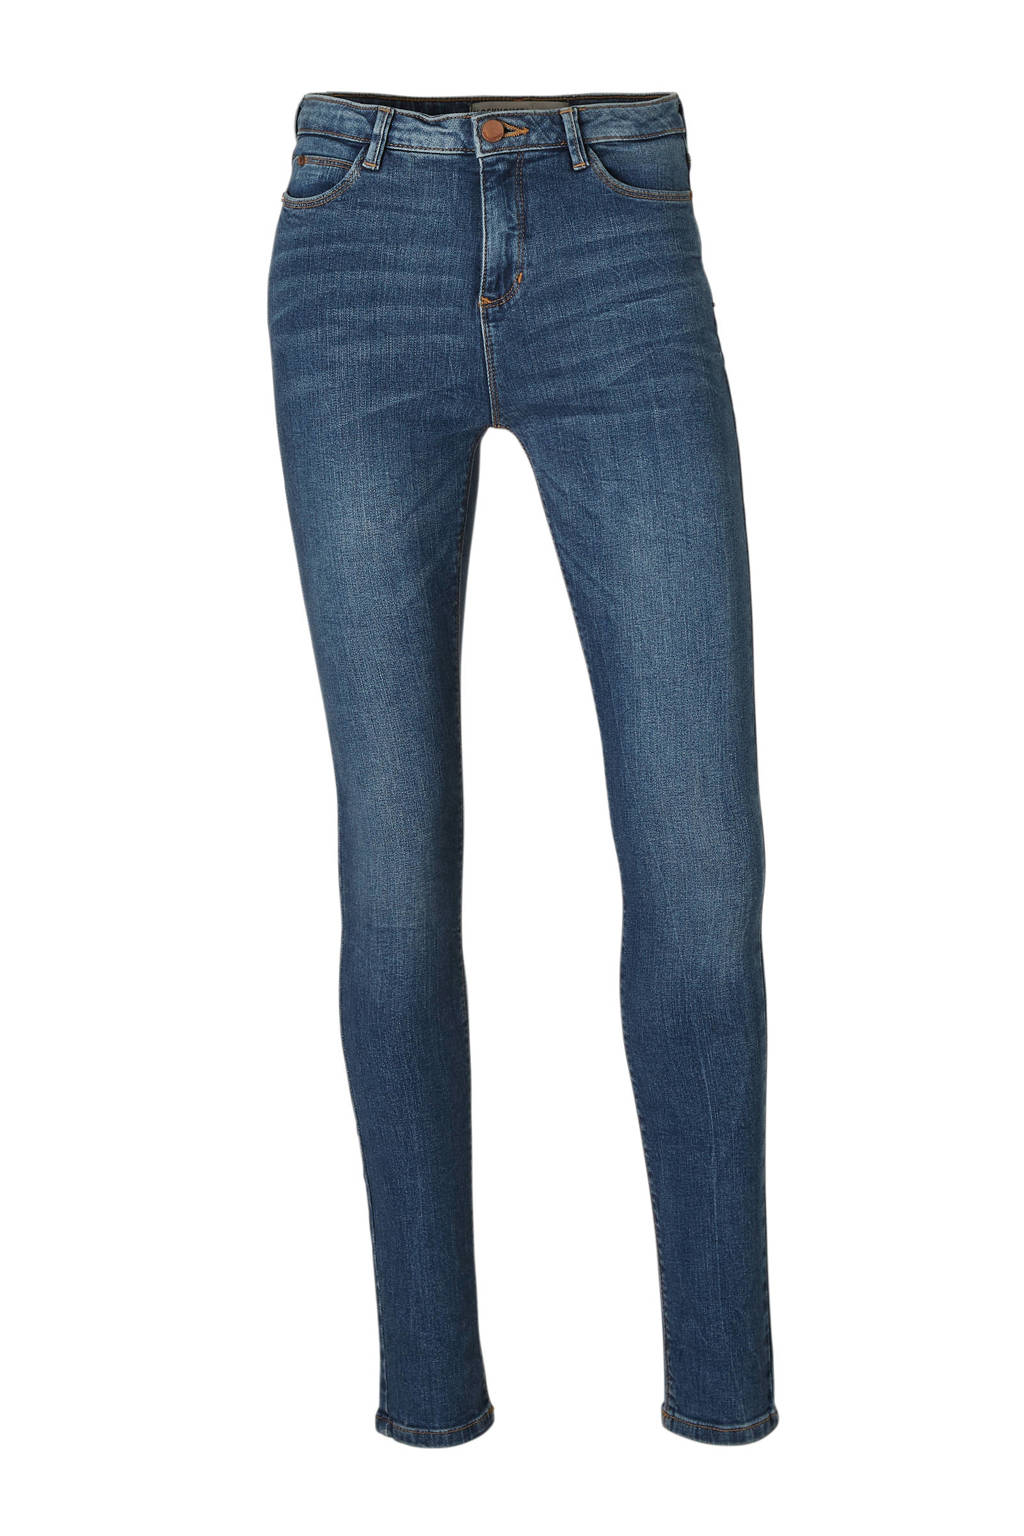 C&A Clockhouse skinny jeans, Dark denim